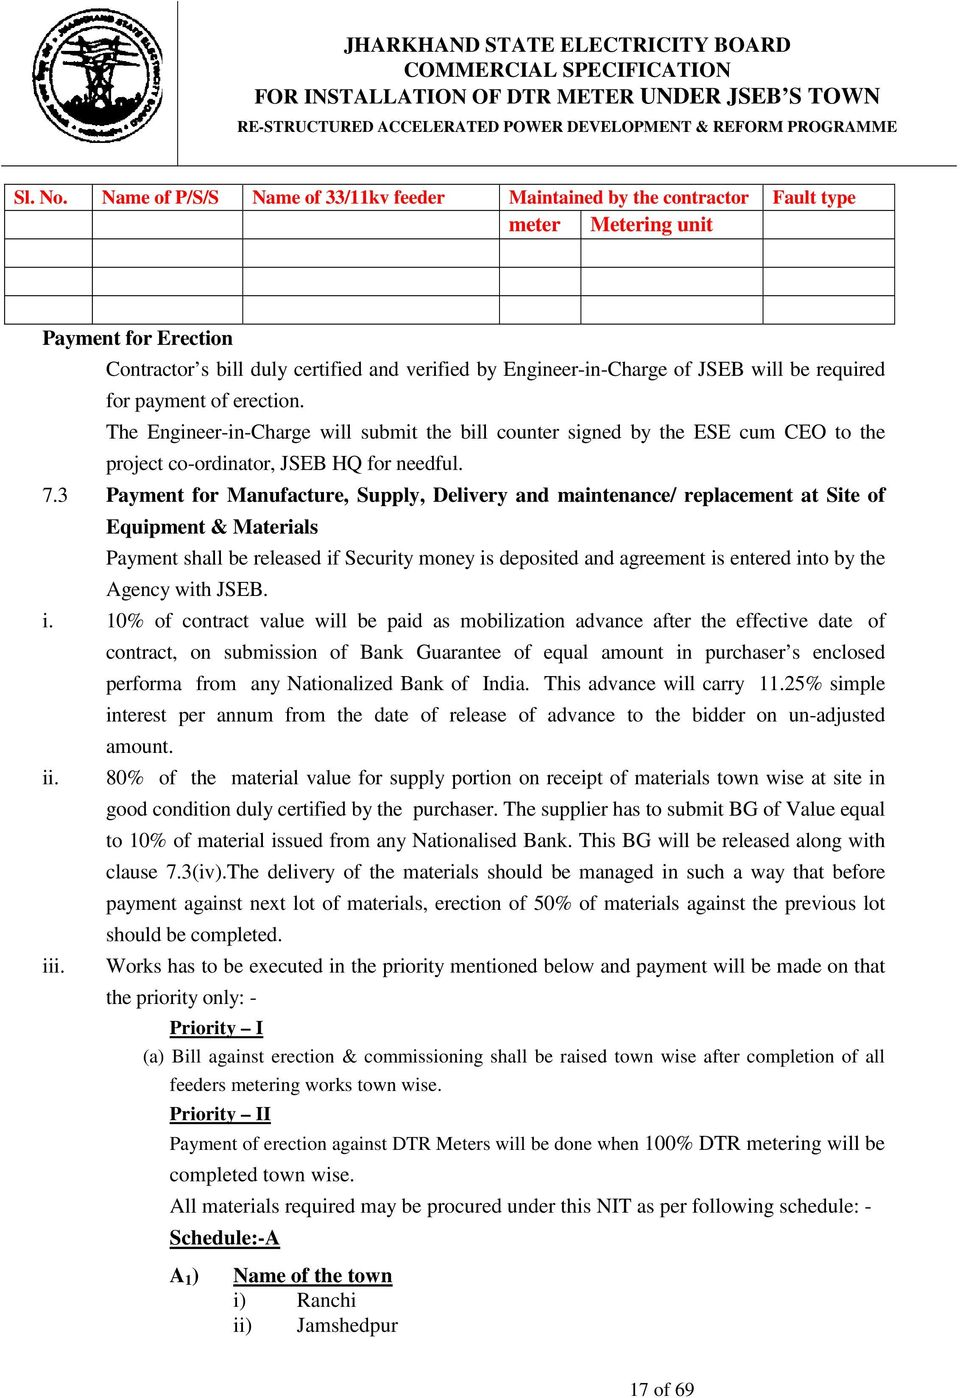 be required for payment of erection. The Engineer-in-Charge will submit the bill counter signed by the ESE cum CEO to the project co-ordinator, JSEB HQ for needful. 7.